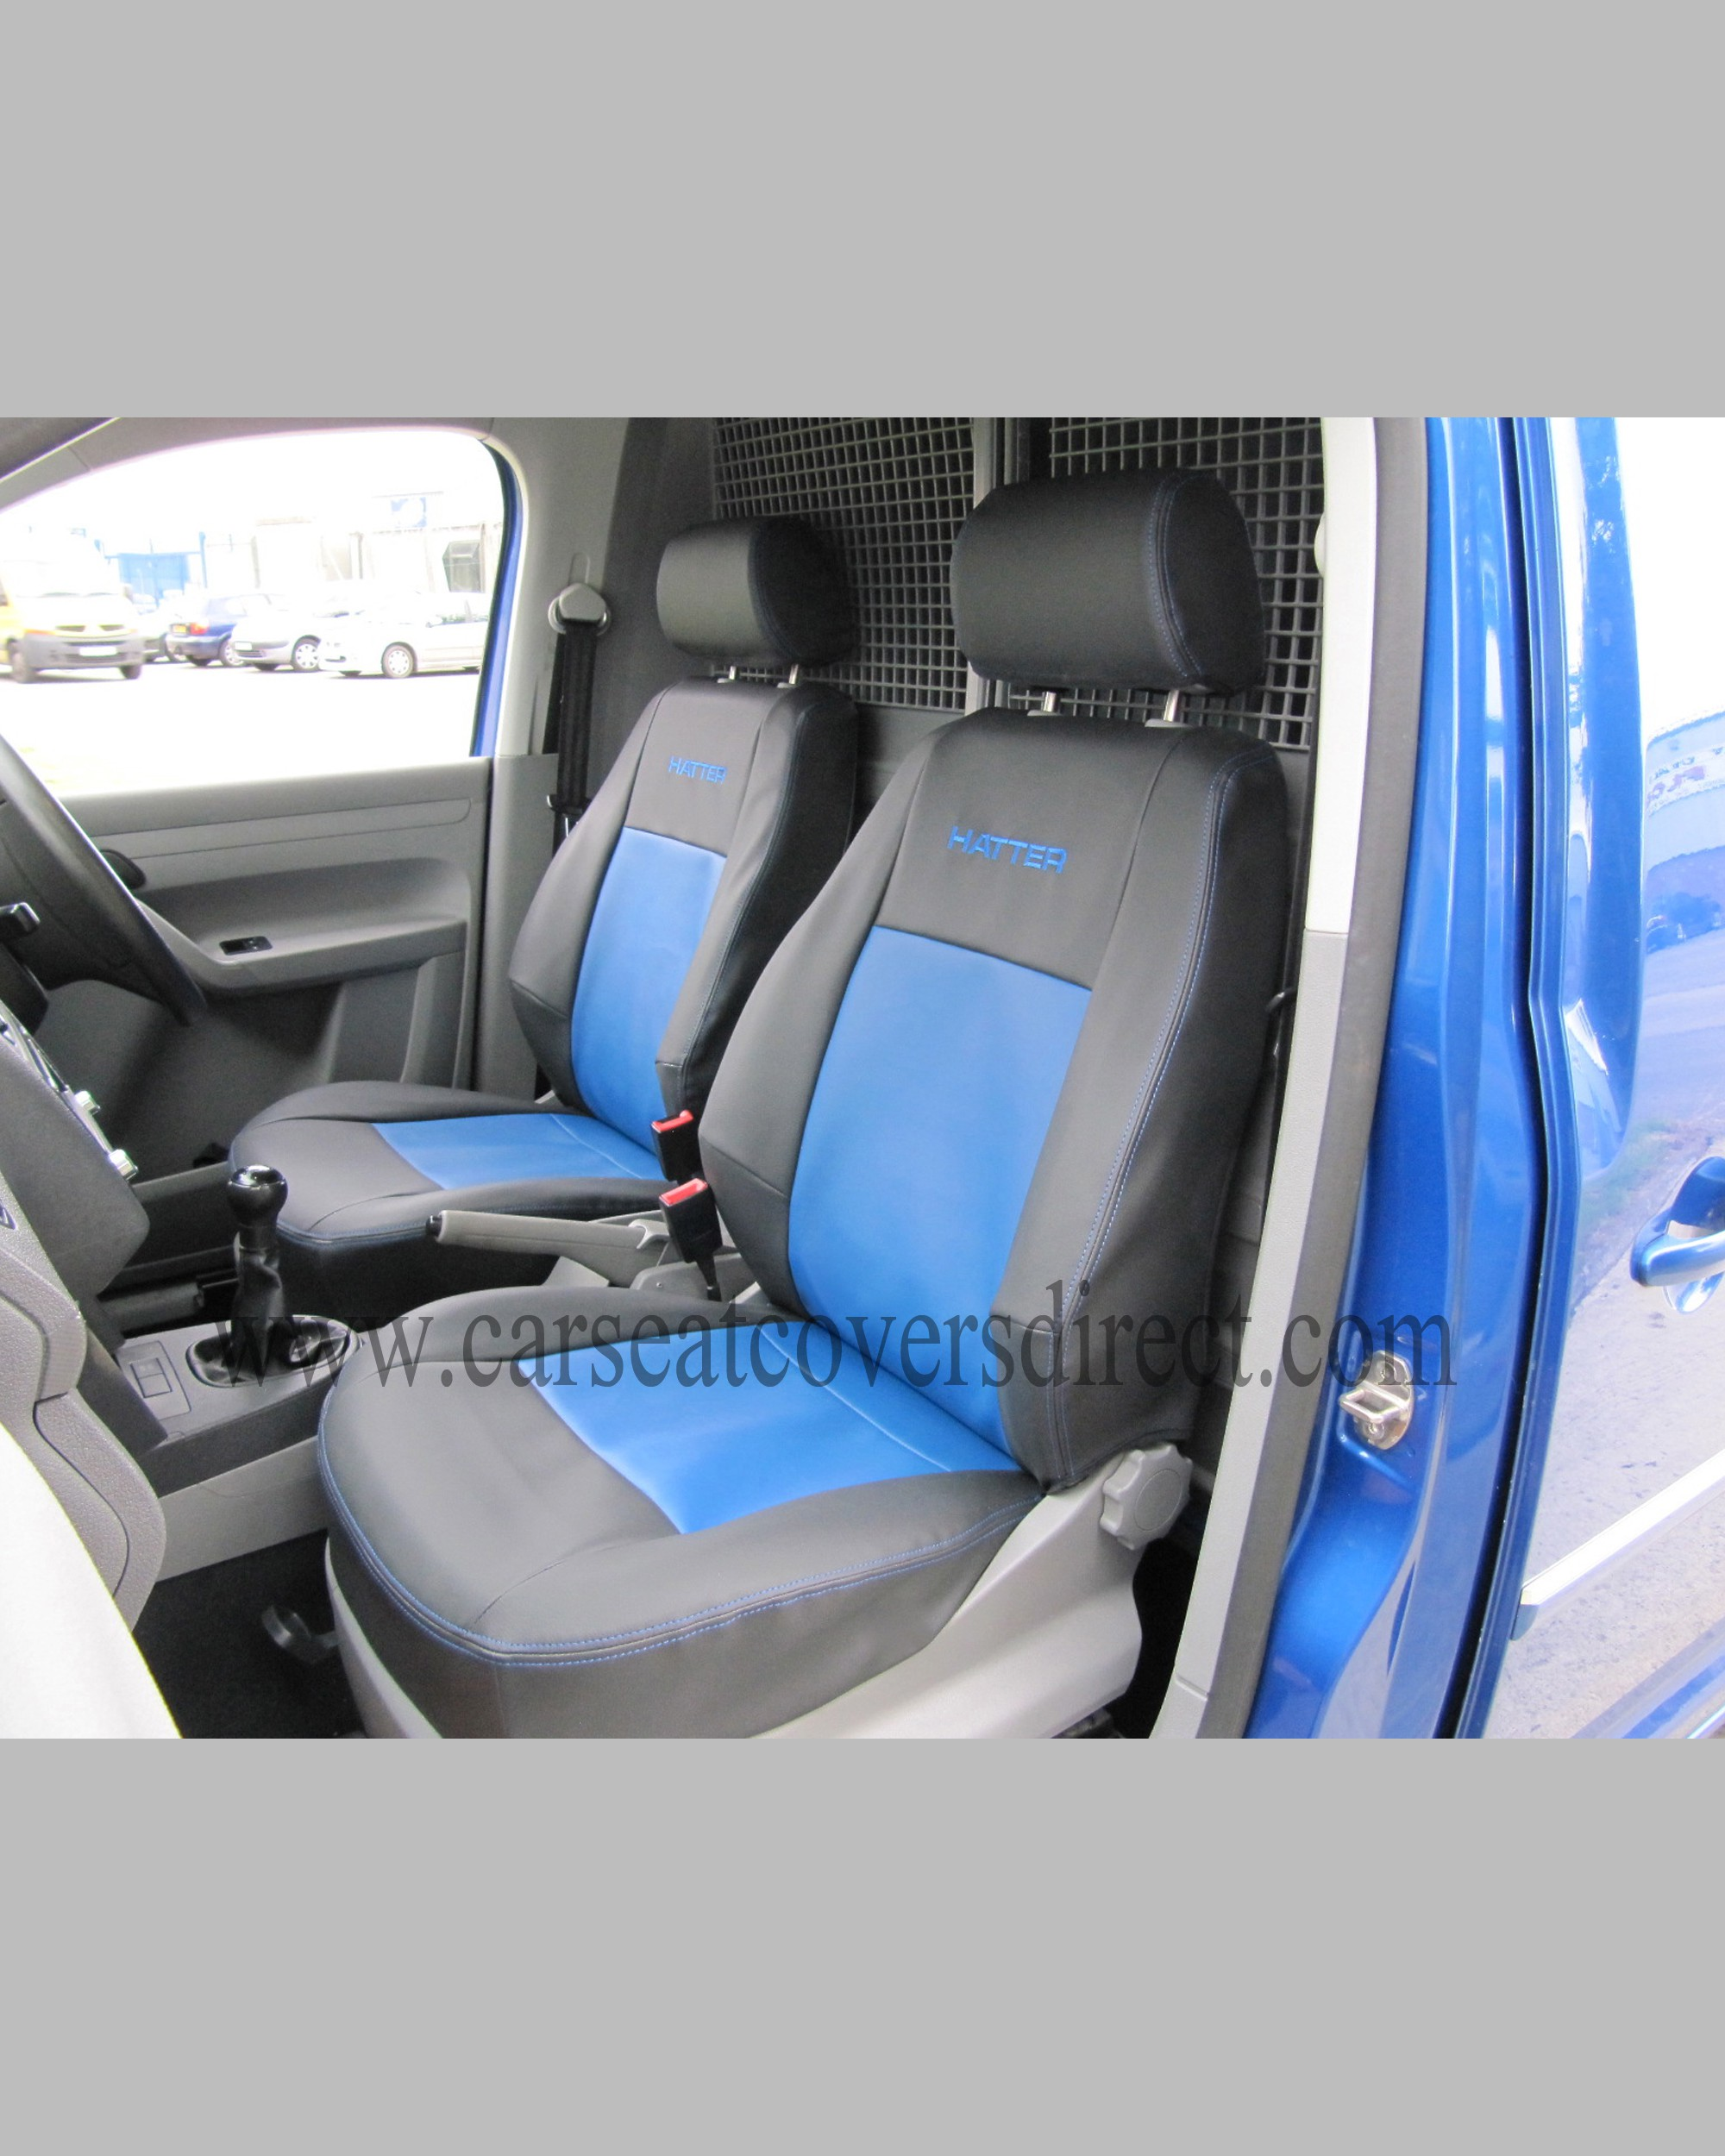 VOLKSWAGEN VW CADDY Black Amp Blue Seat Covers Car Seat